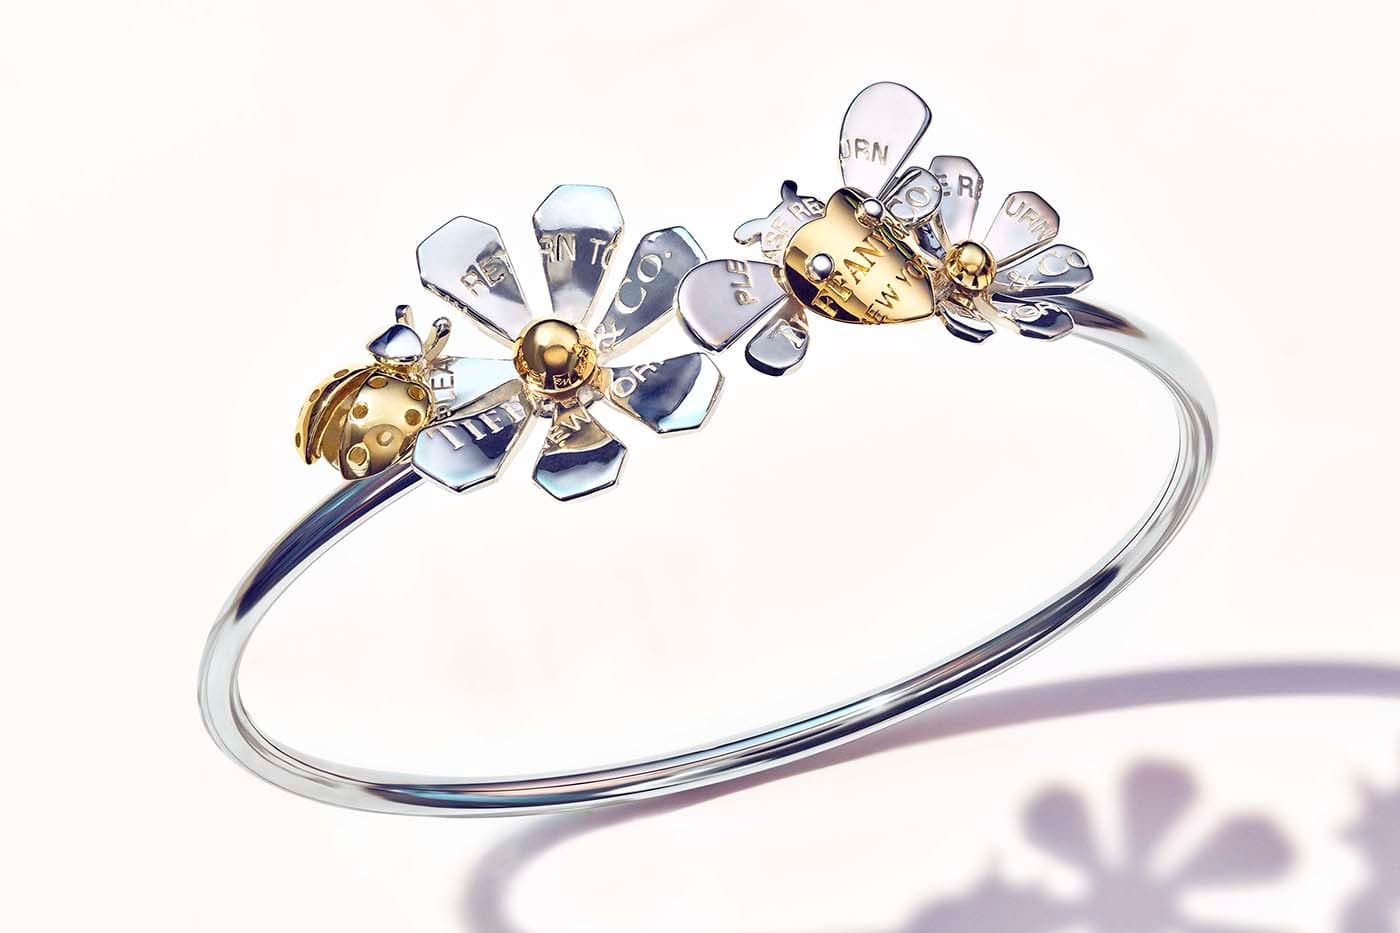 Tiffany&Co. 'Return to Tiffany Love Bugs' collection bangle in yellow gold and silver